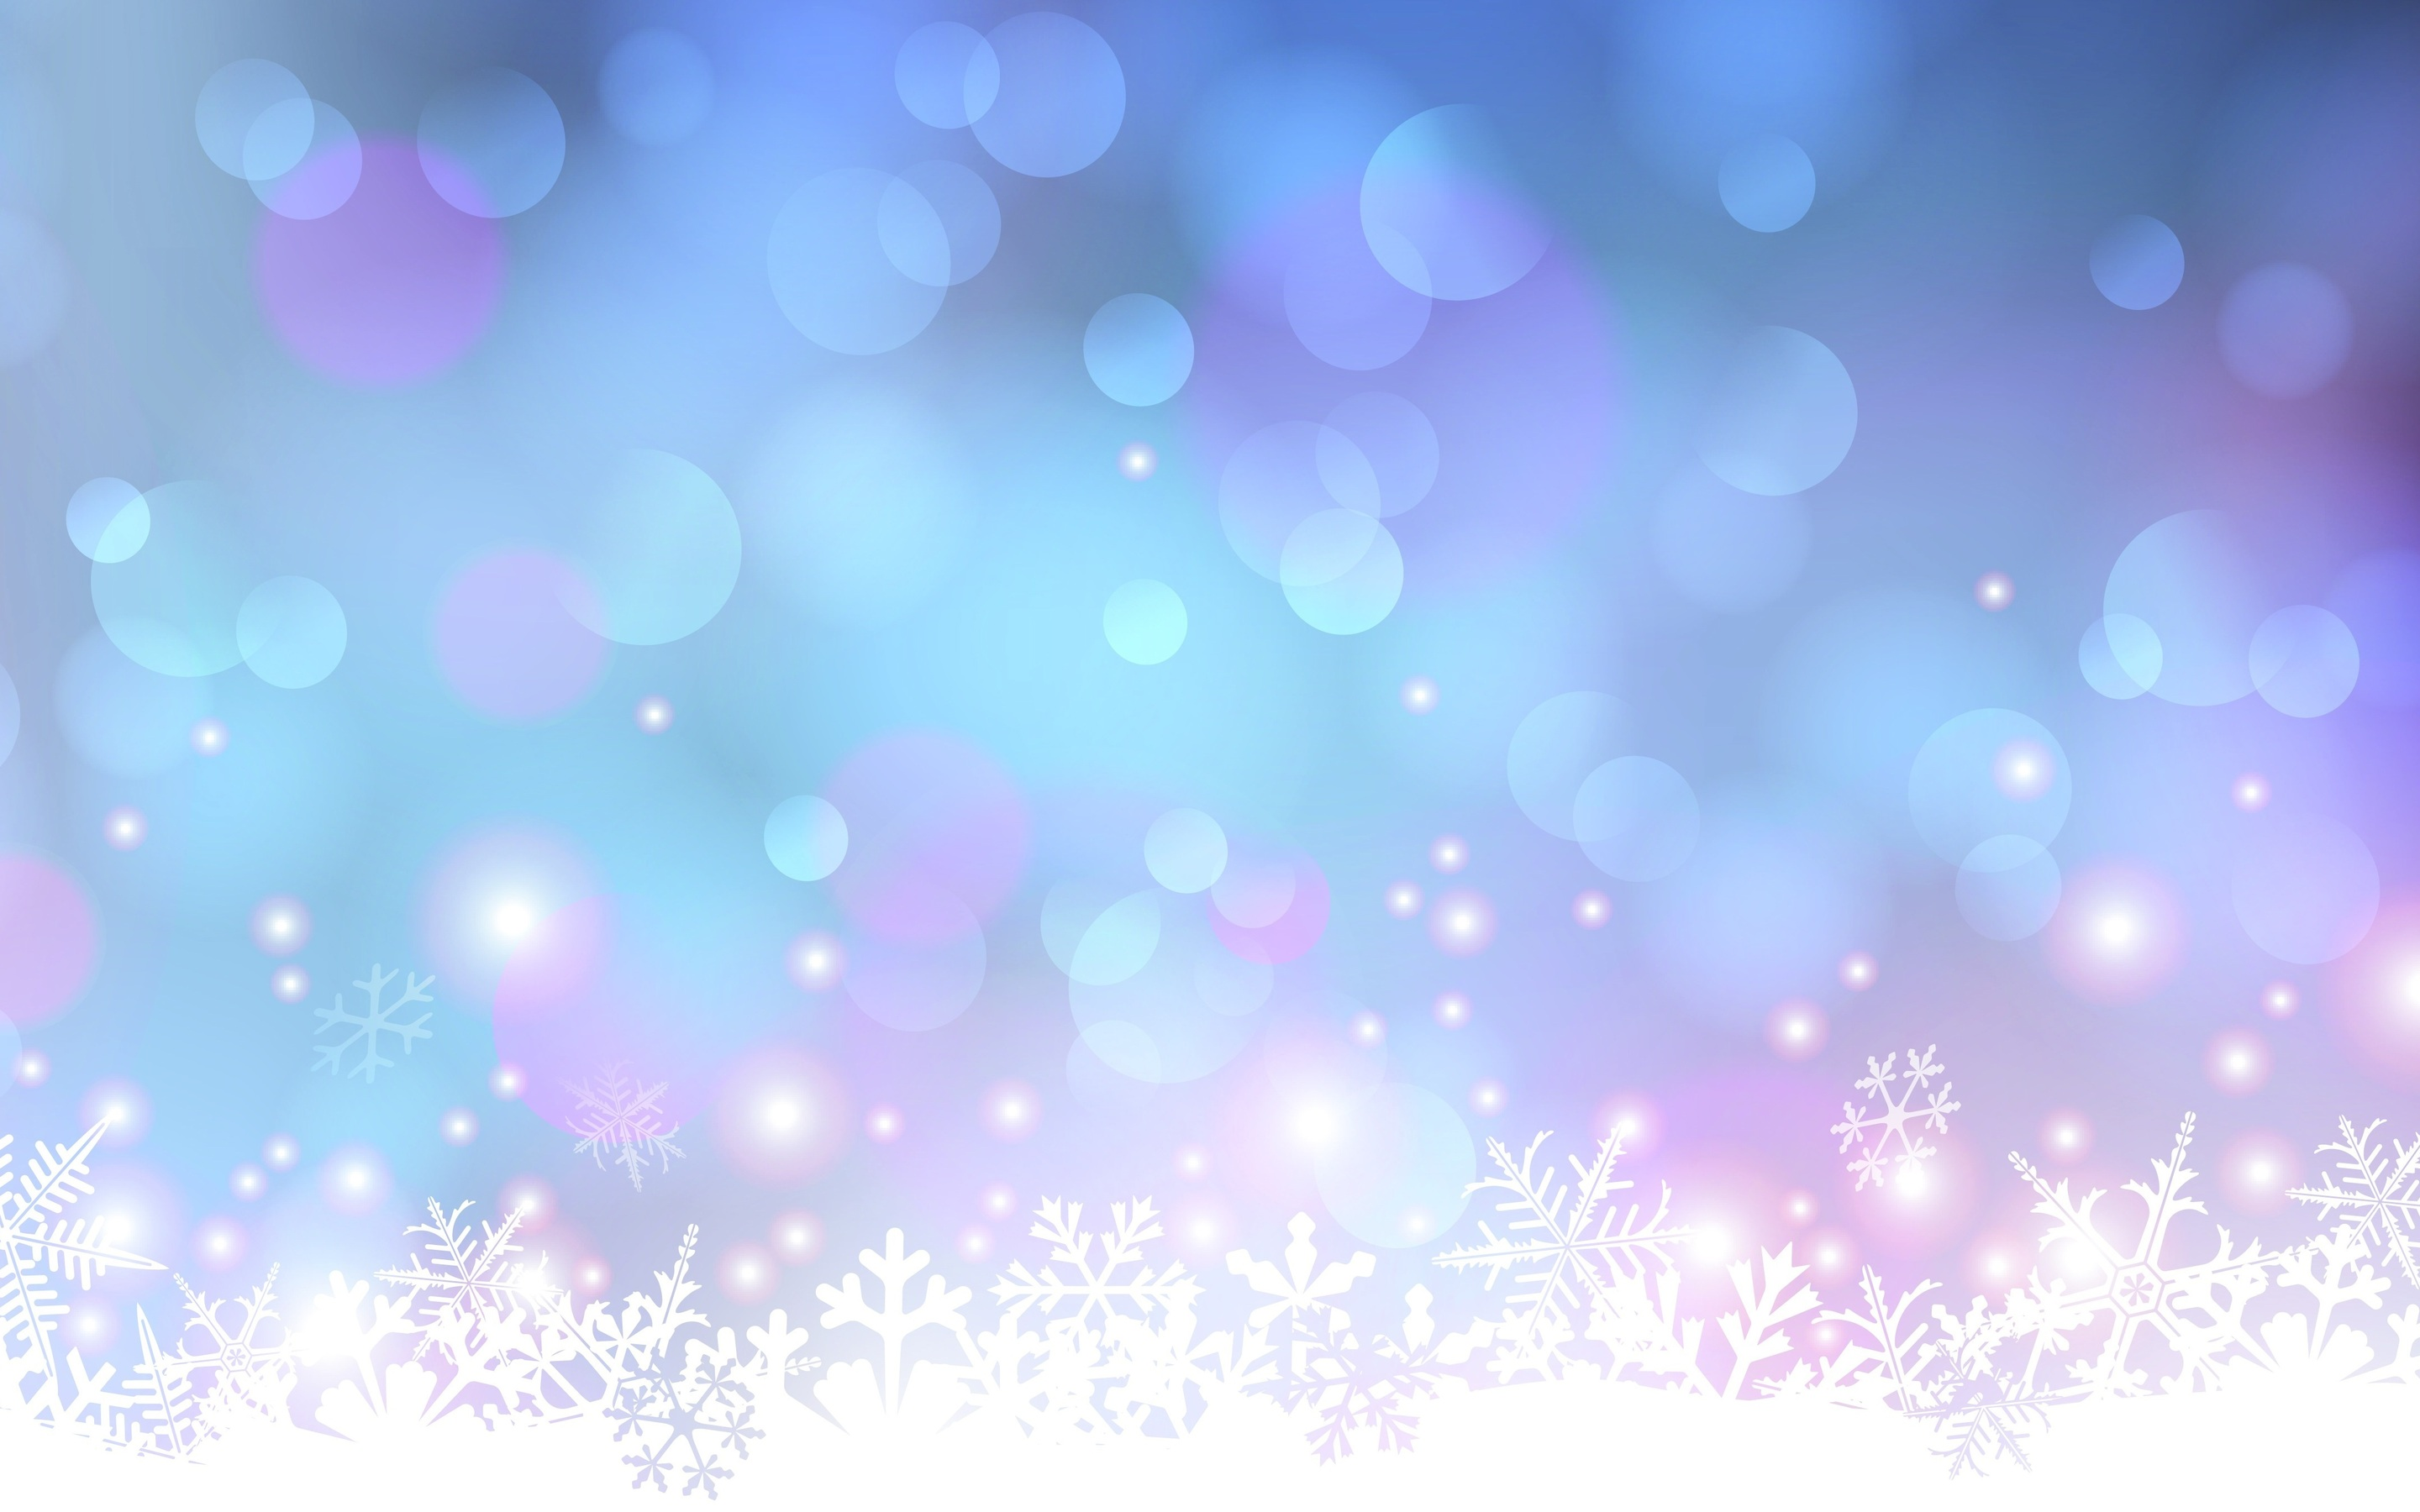 Free Xmas Desktop Backgrounds - WallpaperSafari